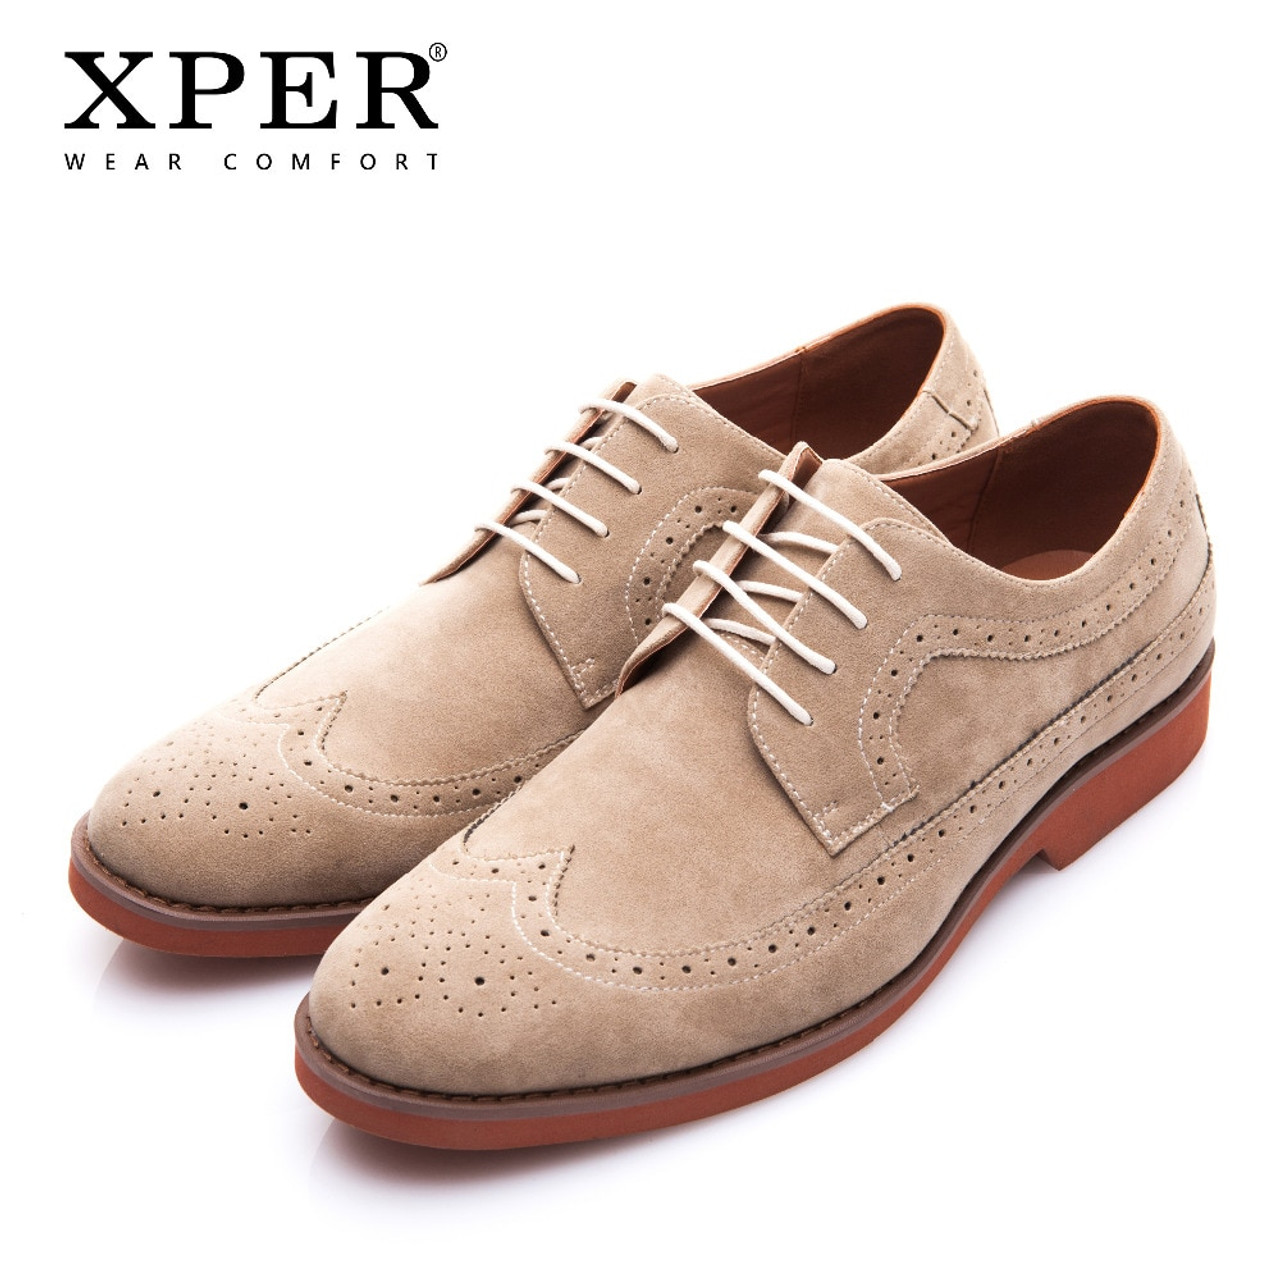 XPER Brand Spring Autumn Work Men Dress Shoes Fashion Brogue Shoes Business  Formal Wedding British Style Casual Shoes XAF86762 - OnshopDeals.Com 2d0dc39e06f3